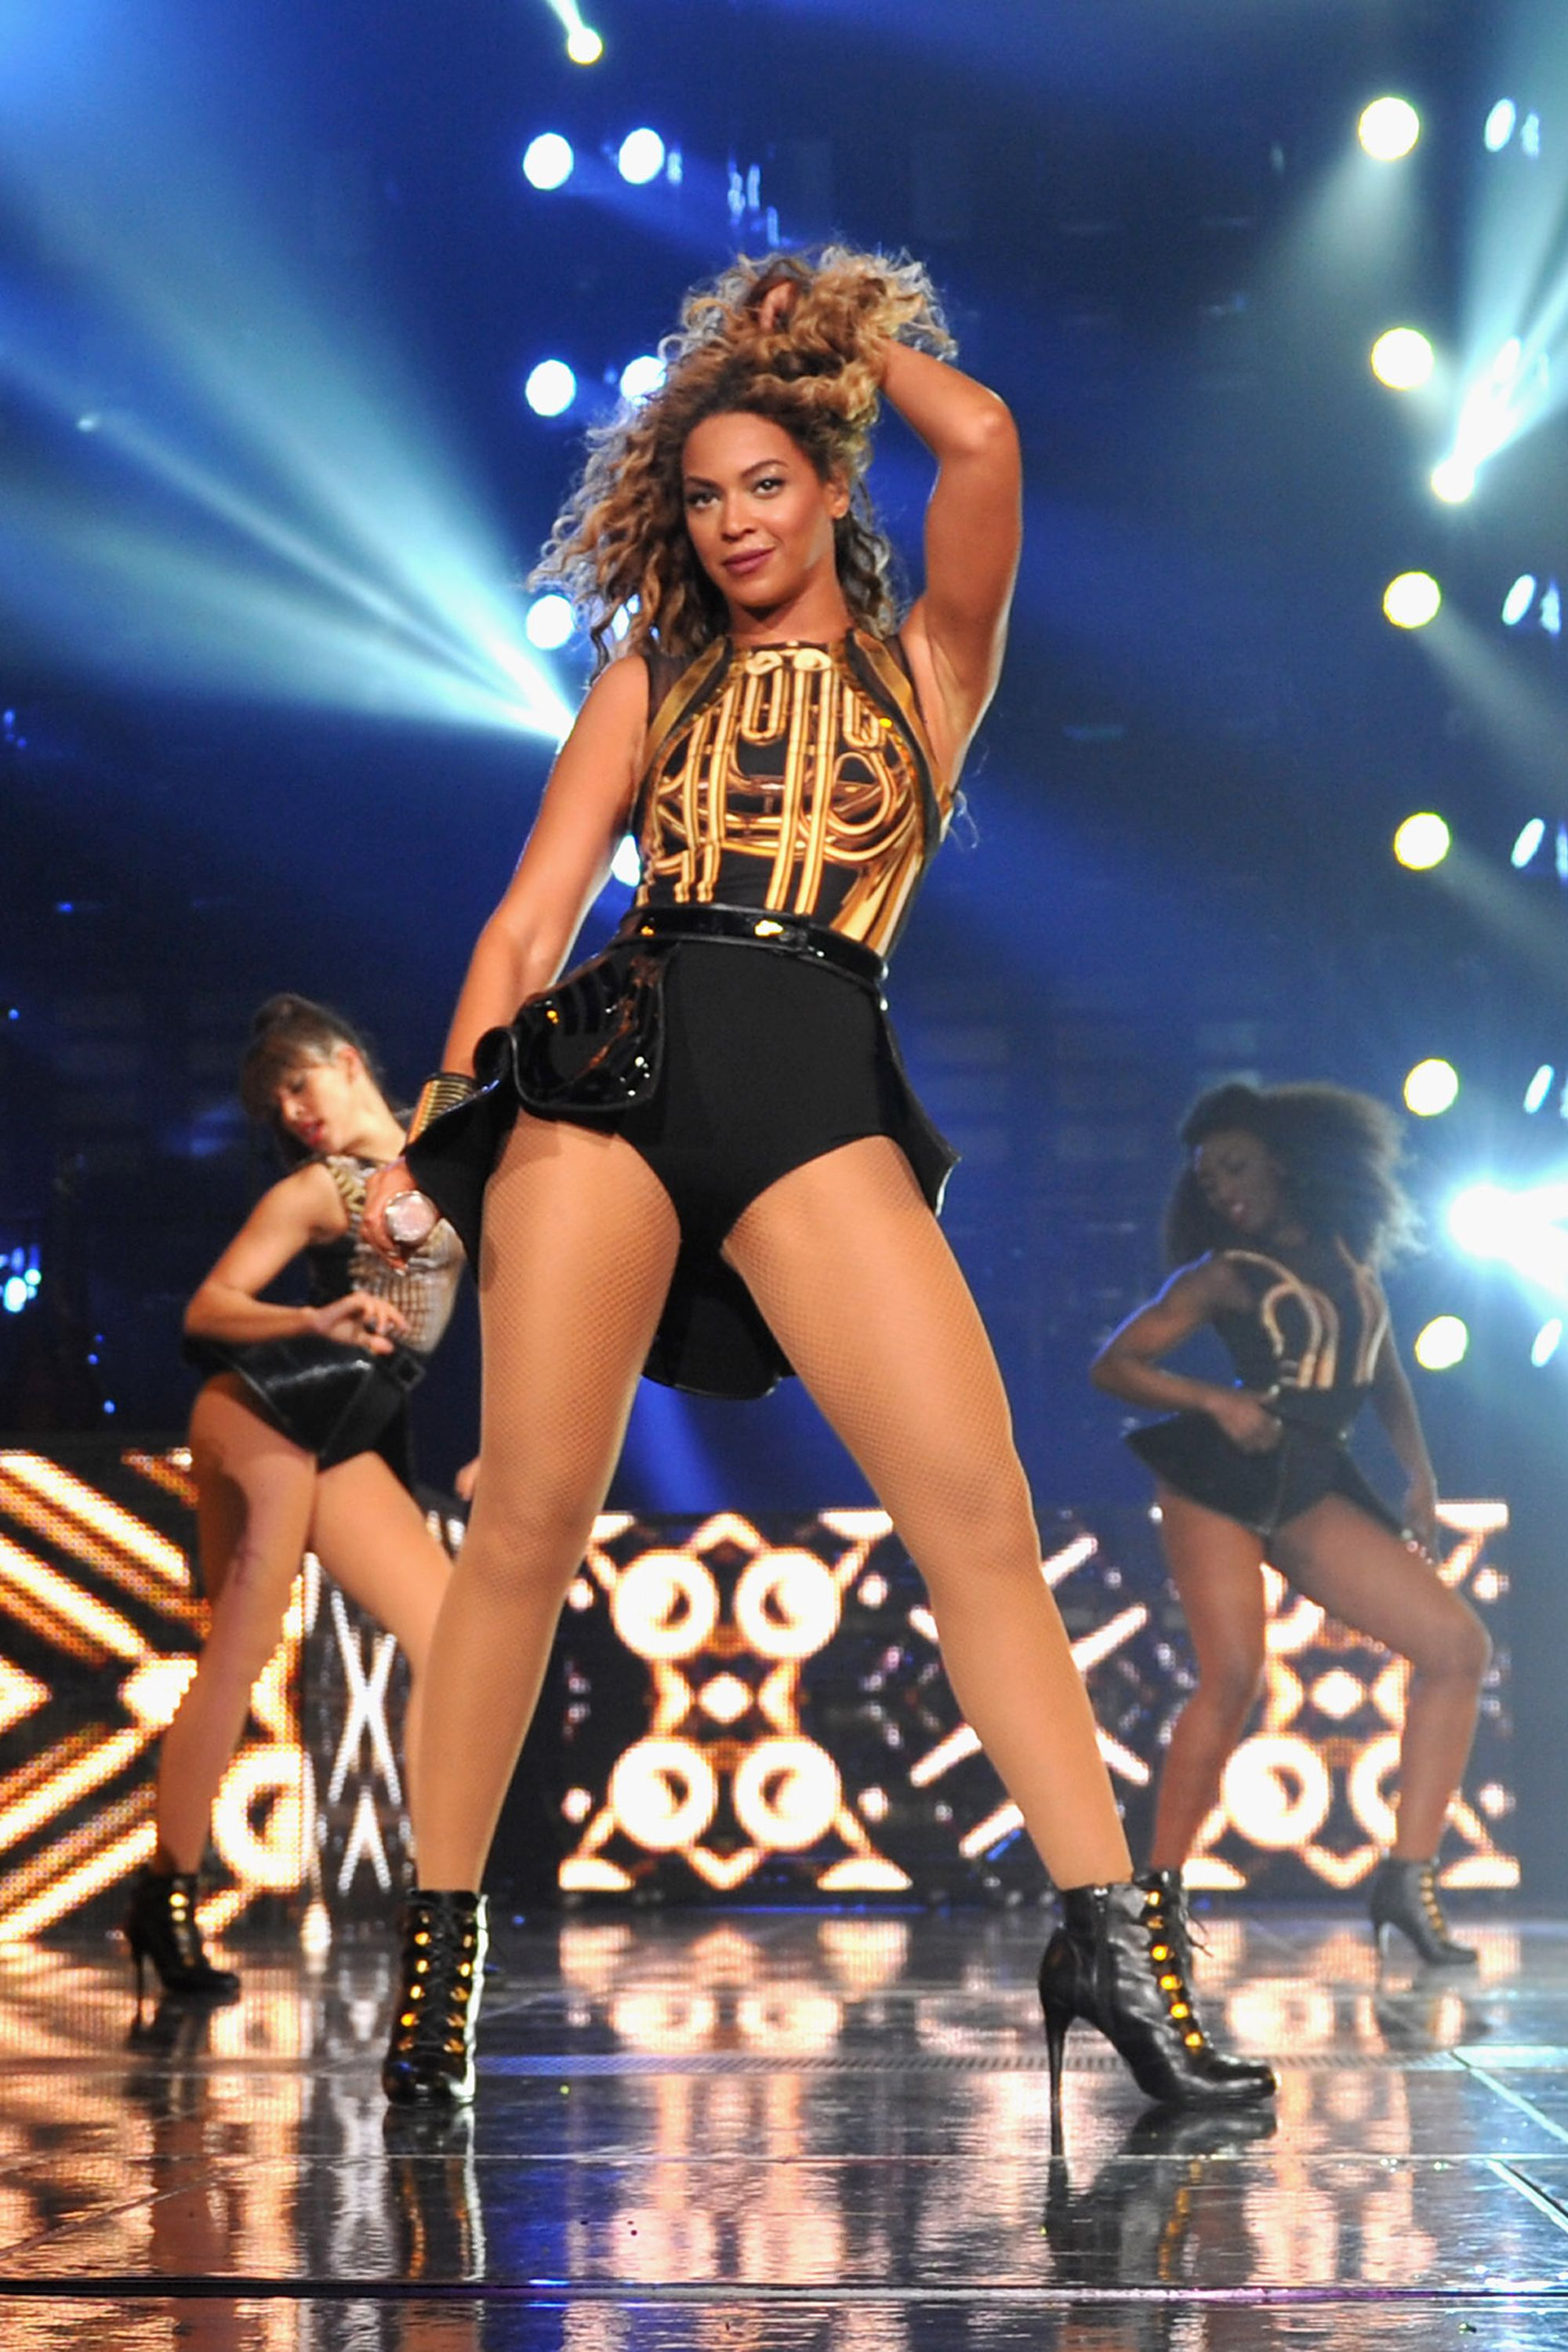 Beyonce shocks fans with faux nipple tour costume